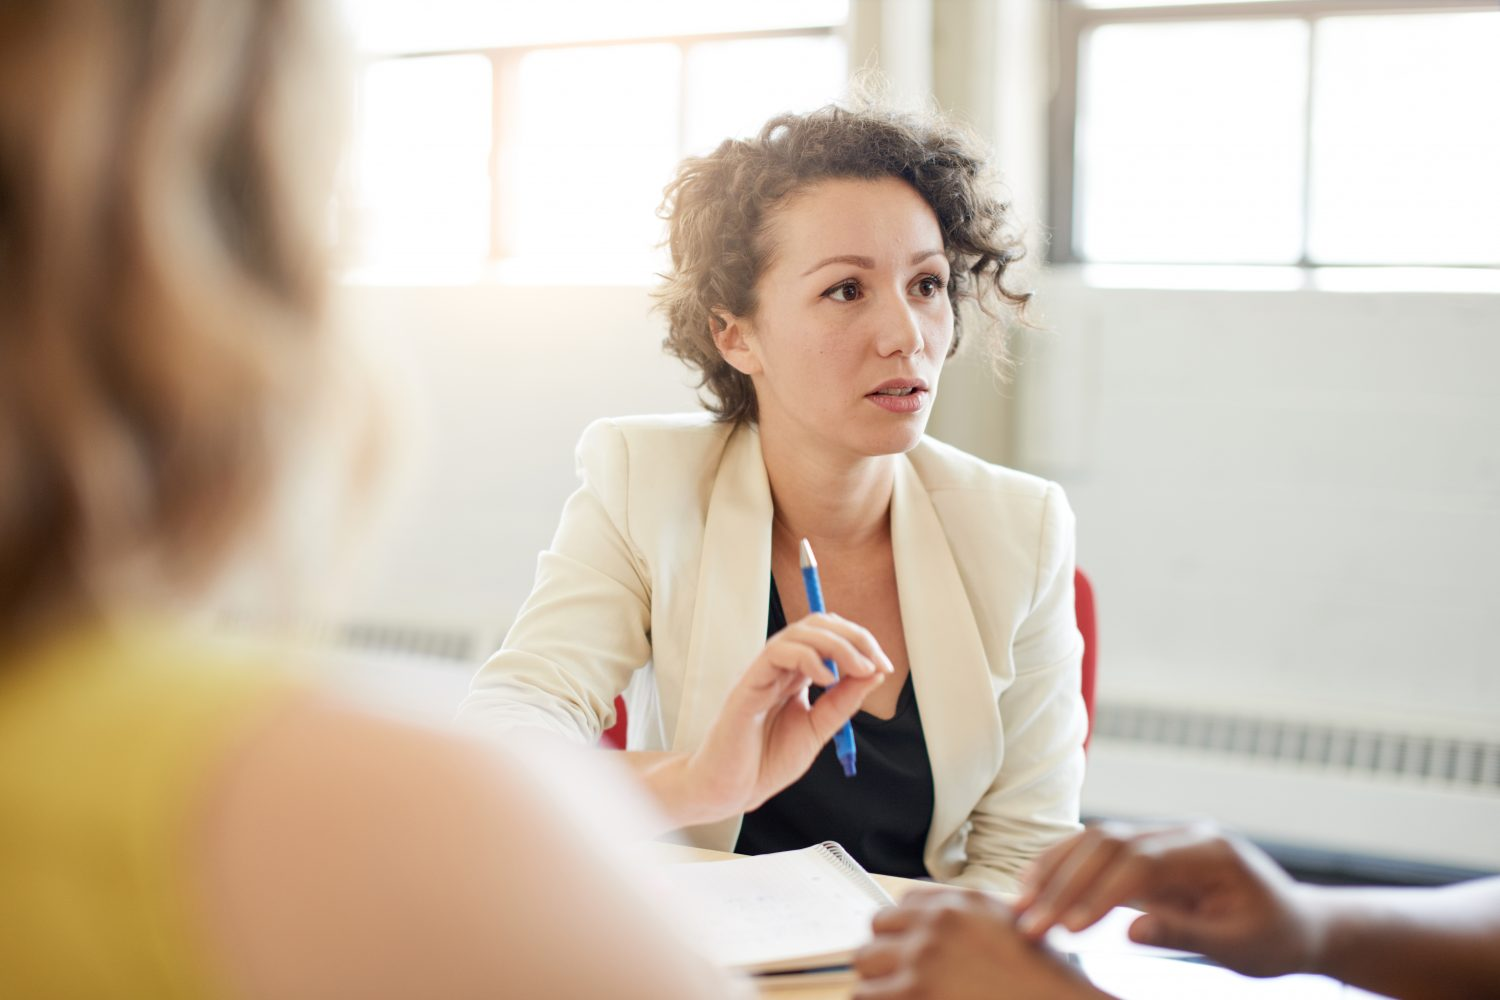 Woman concentrating on conversation with colleagues